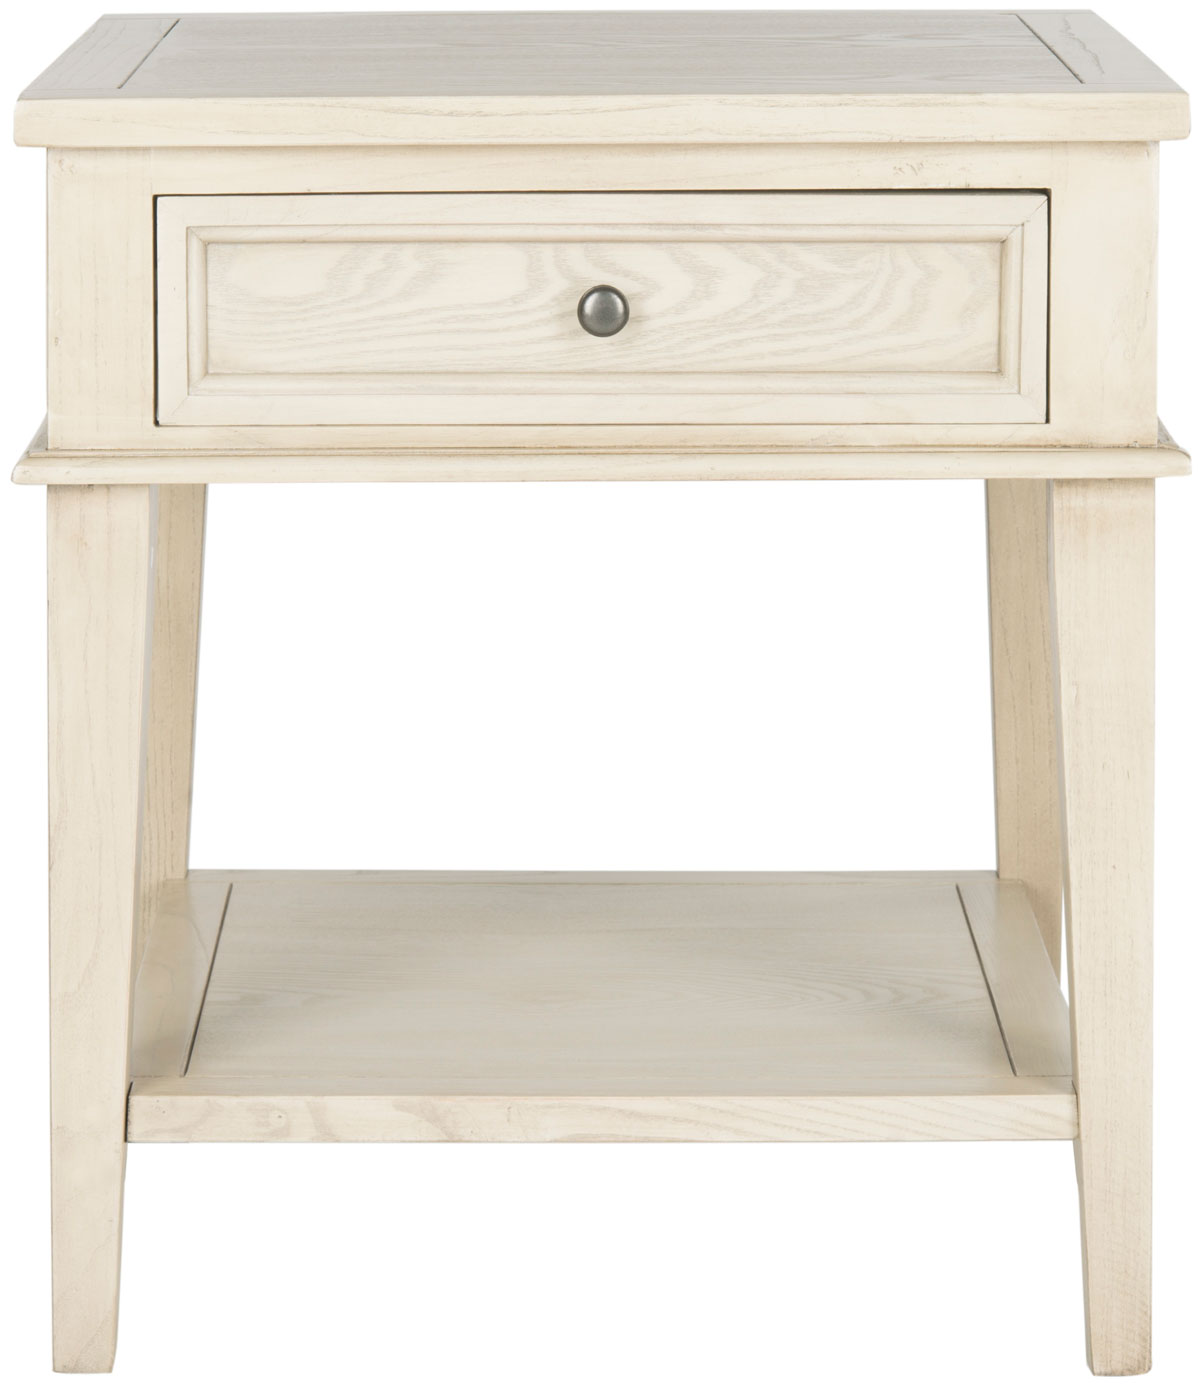 AMH6640B Accent Tables Furniture by Safavieh